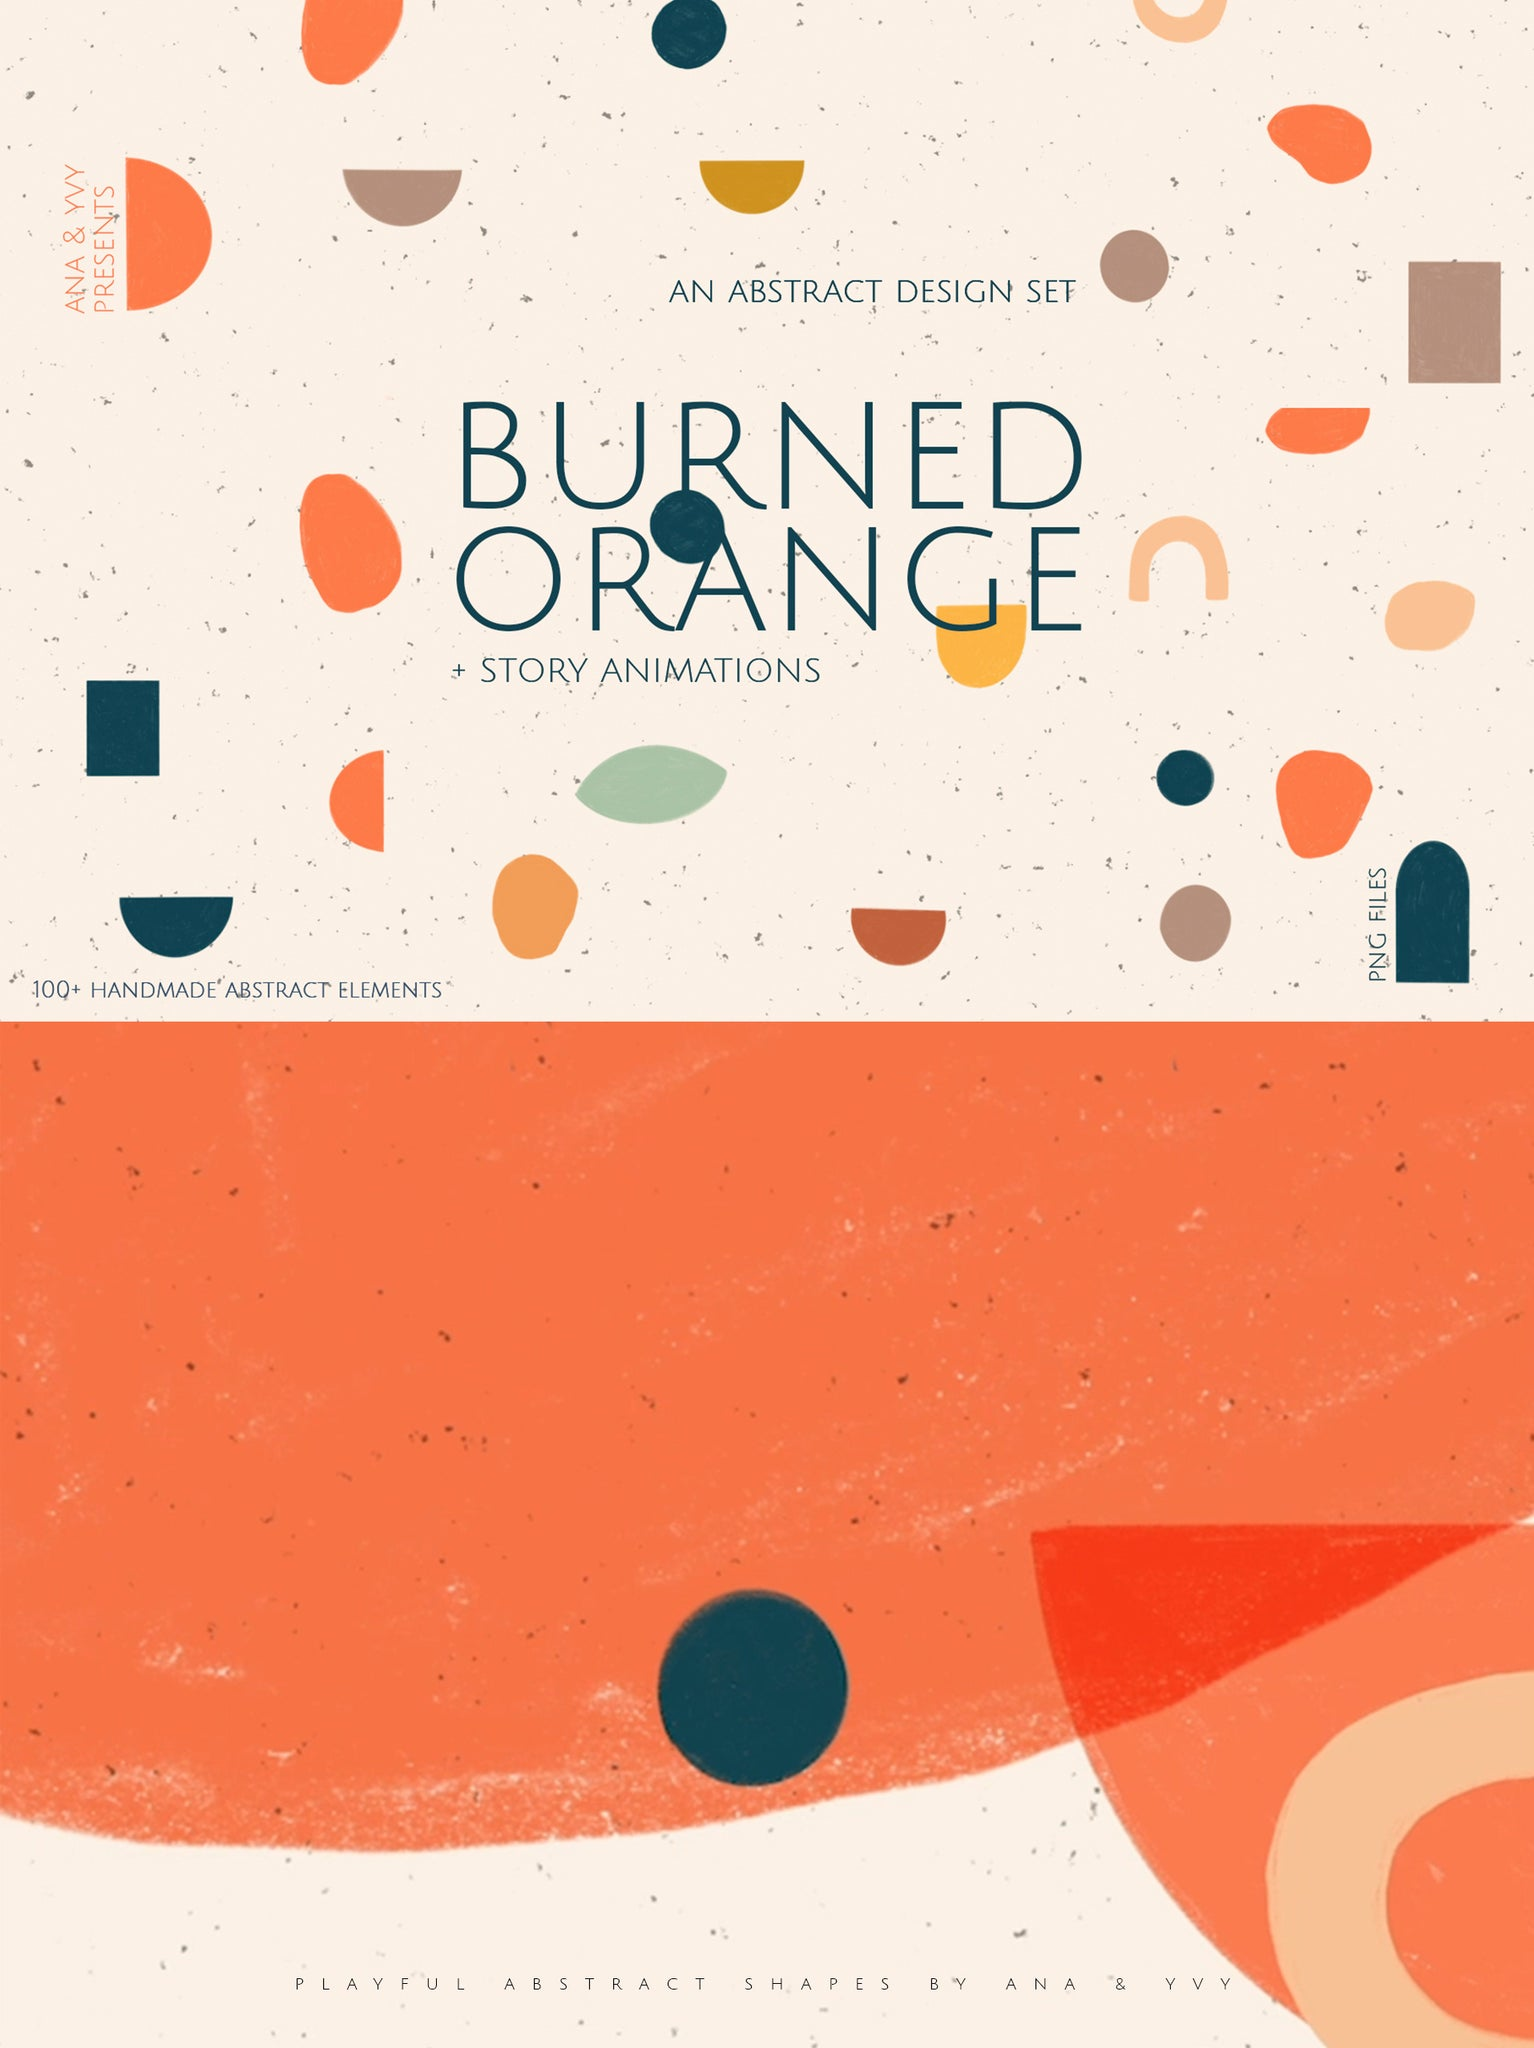 Abstract Shapes | The Burned Orange - ANA & YVY